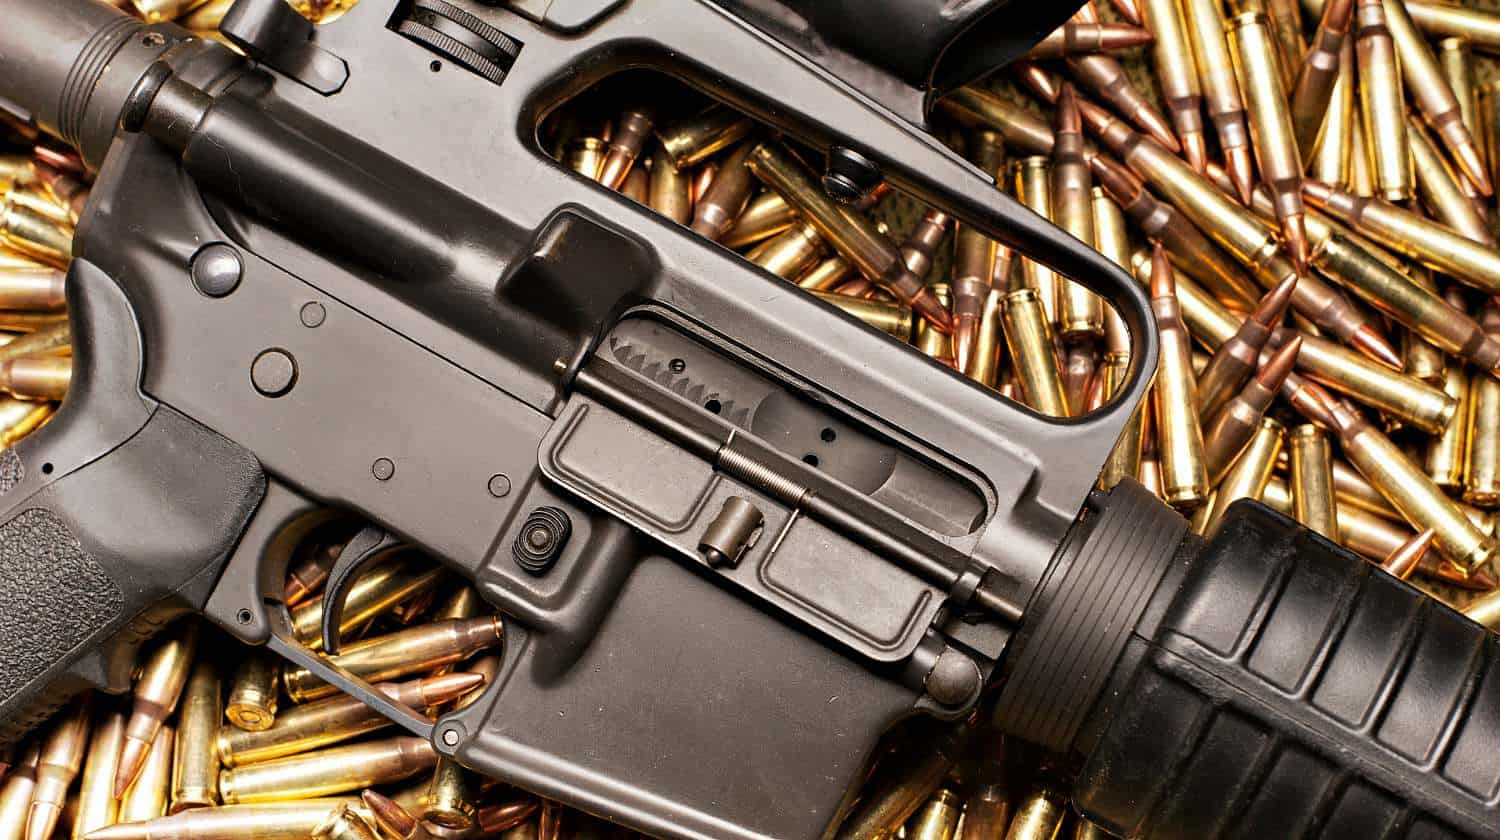 Featured | AR15 with .223 ammunition | AR 15 Lower Receiver And Ammunition | Basics Of The AR-15 Part 2